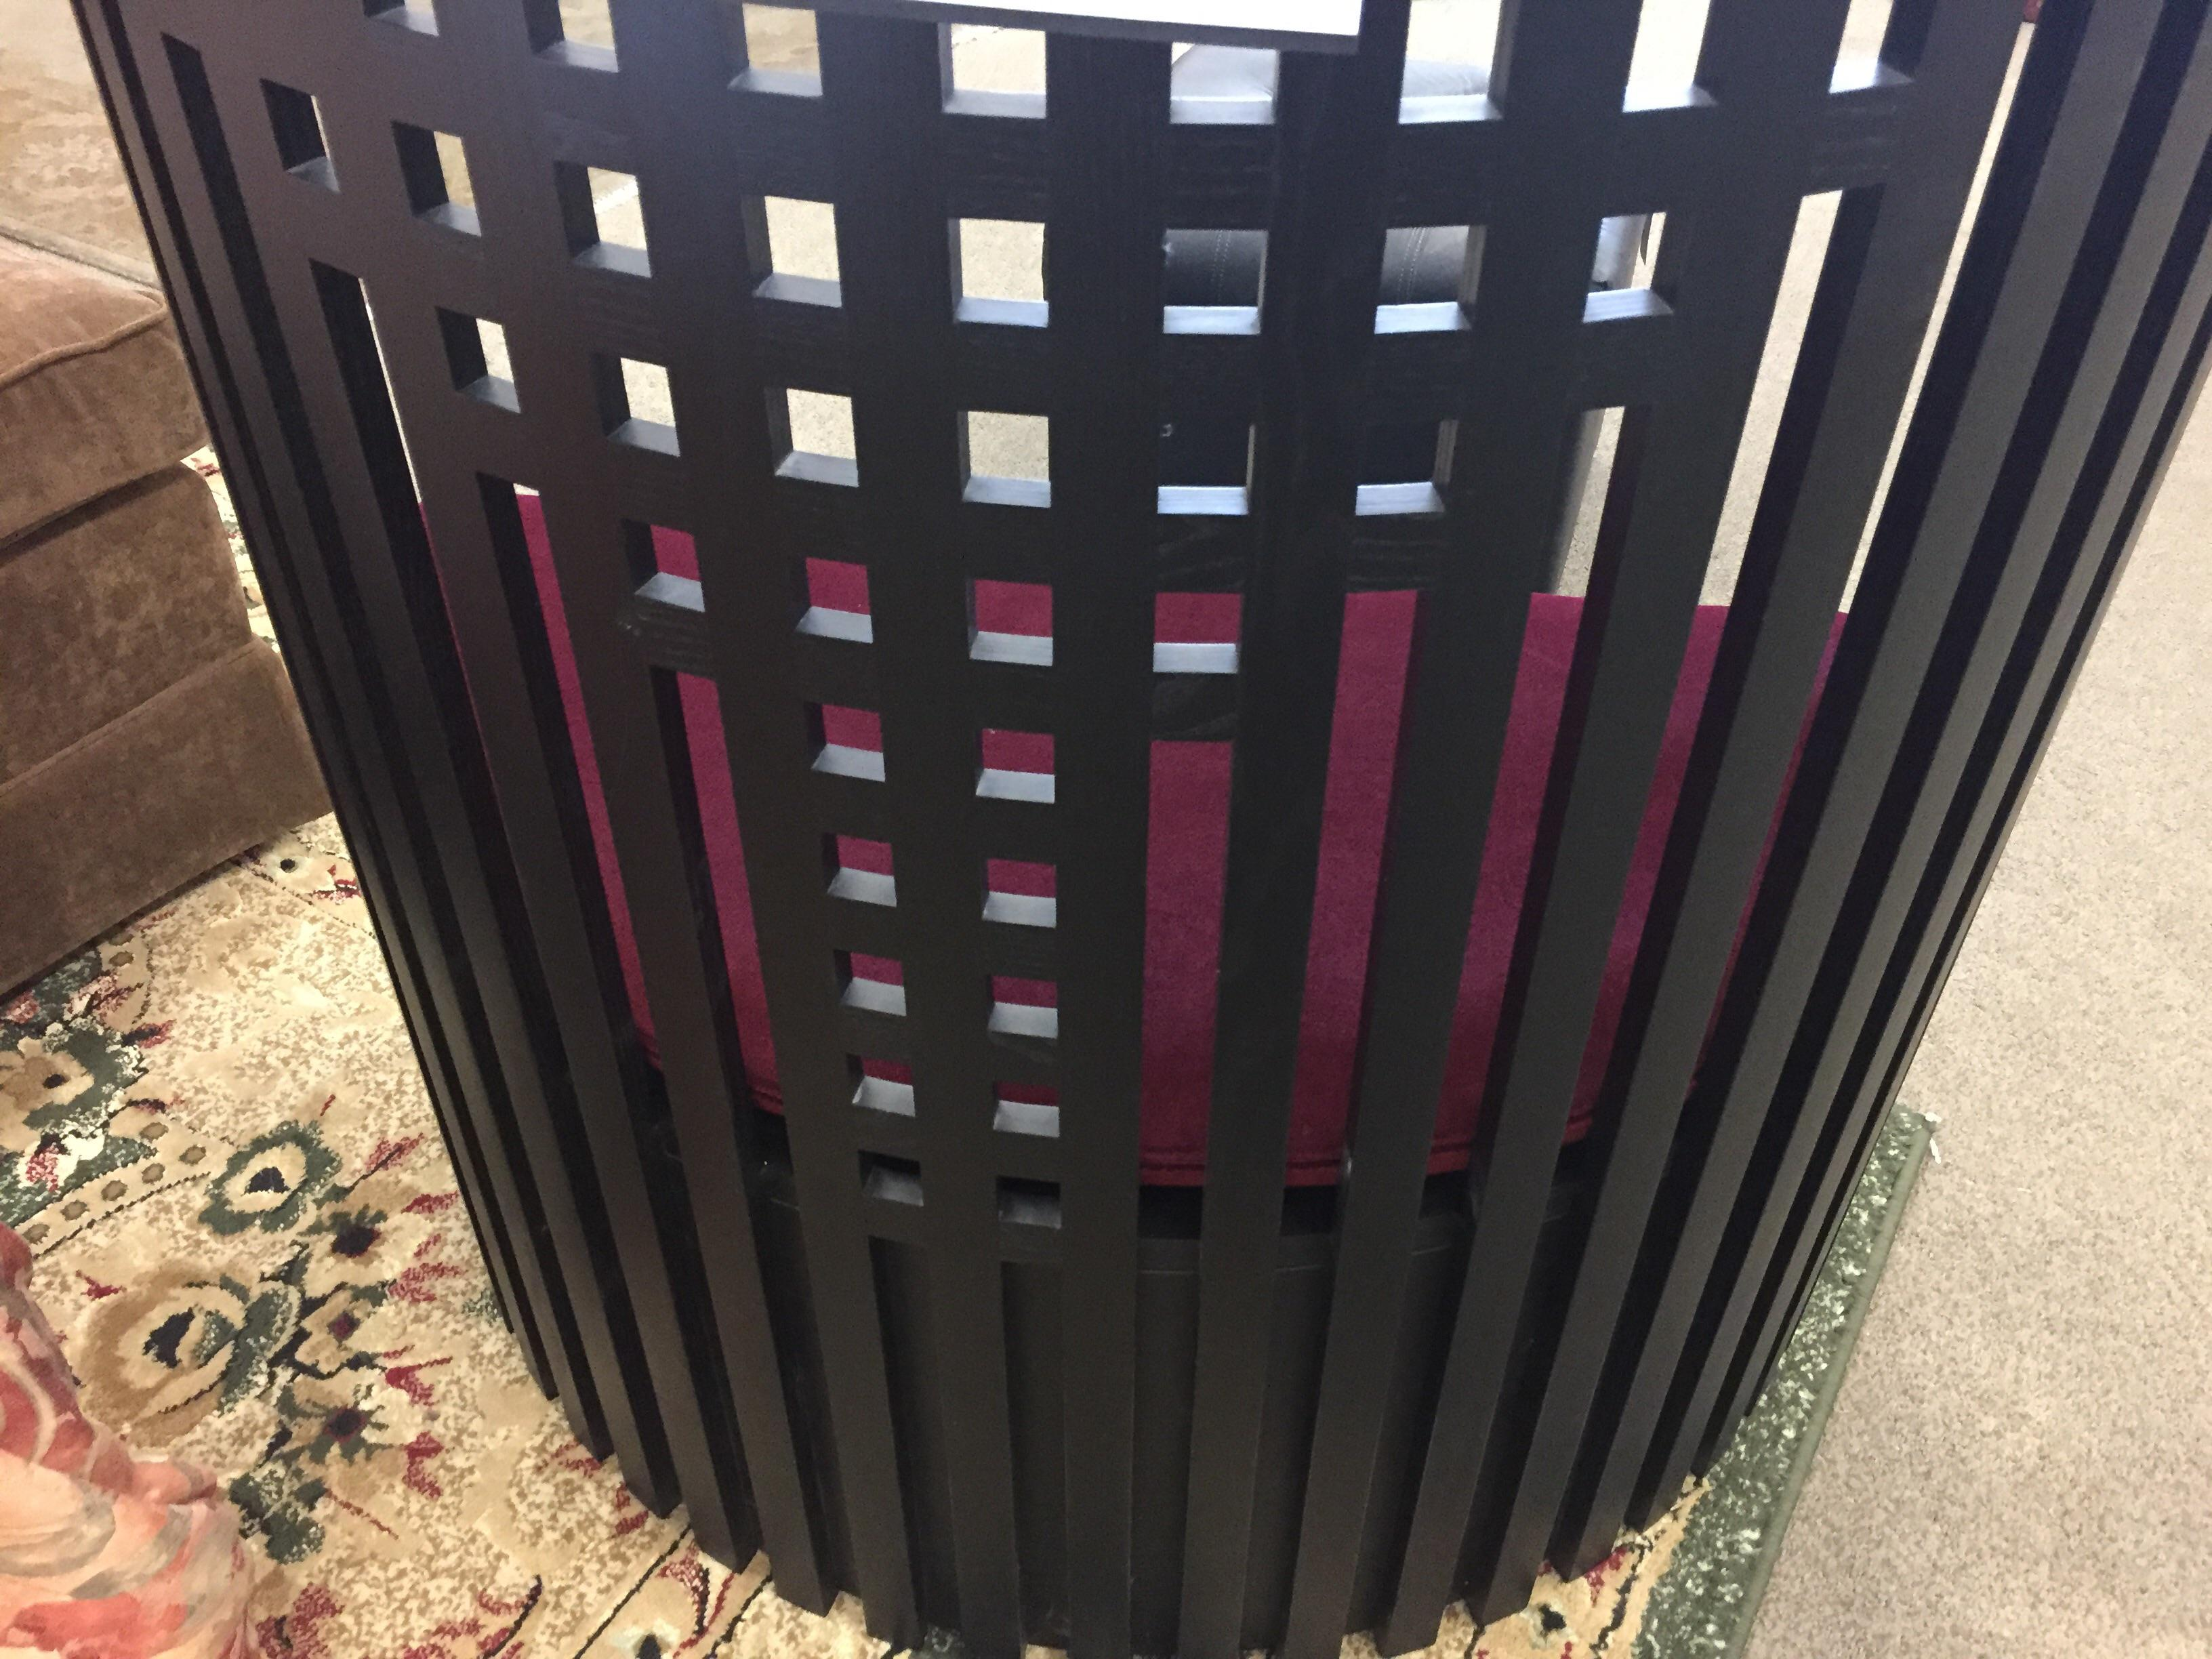 charles rennie mackintosh willow chair art nouveau characteristics chairish for sale image 4 of 11